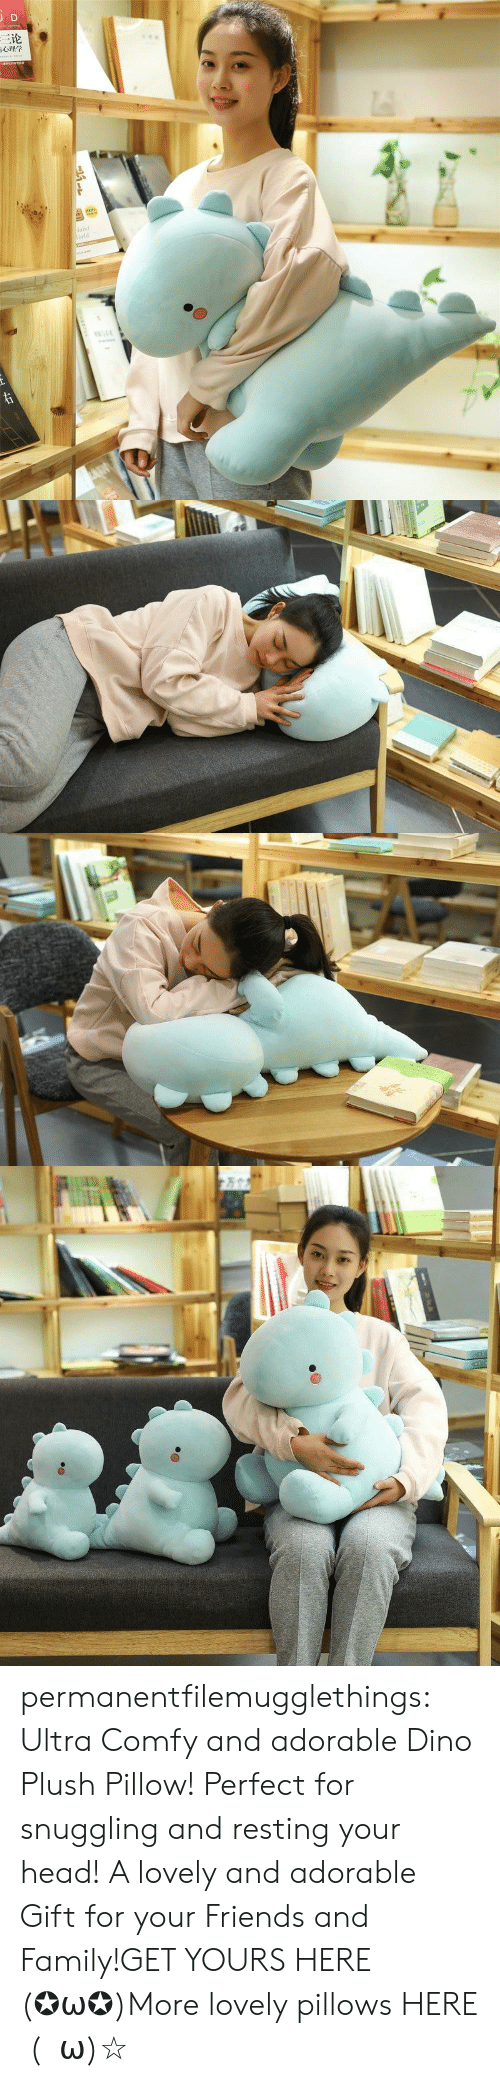 pillows: JD  三论  laint  orld  TDNAR  ww.e permanentfilemugglethings:  Ultra Comfy and adorable Dino Plush Pillow! Perfect for snuggling and resting your head! A lovely and adorable Gift for your Friends and Family!GET YOURS HERE (✪ω✪)More lovely pillows HERE  (・ω)☆